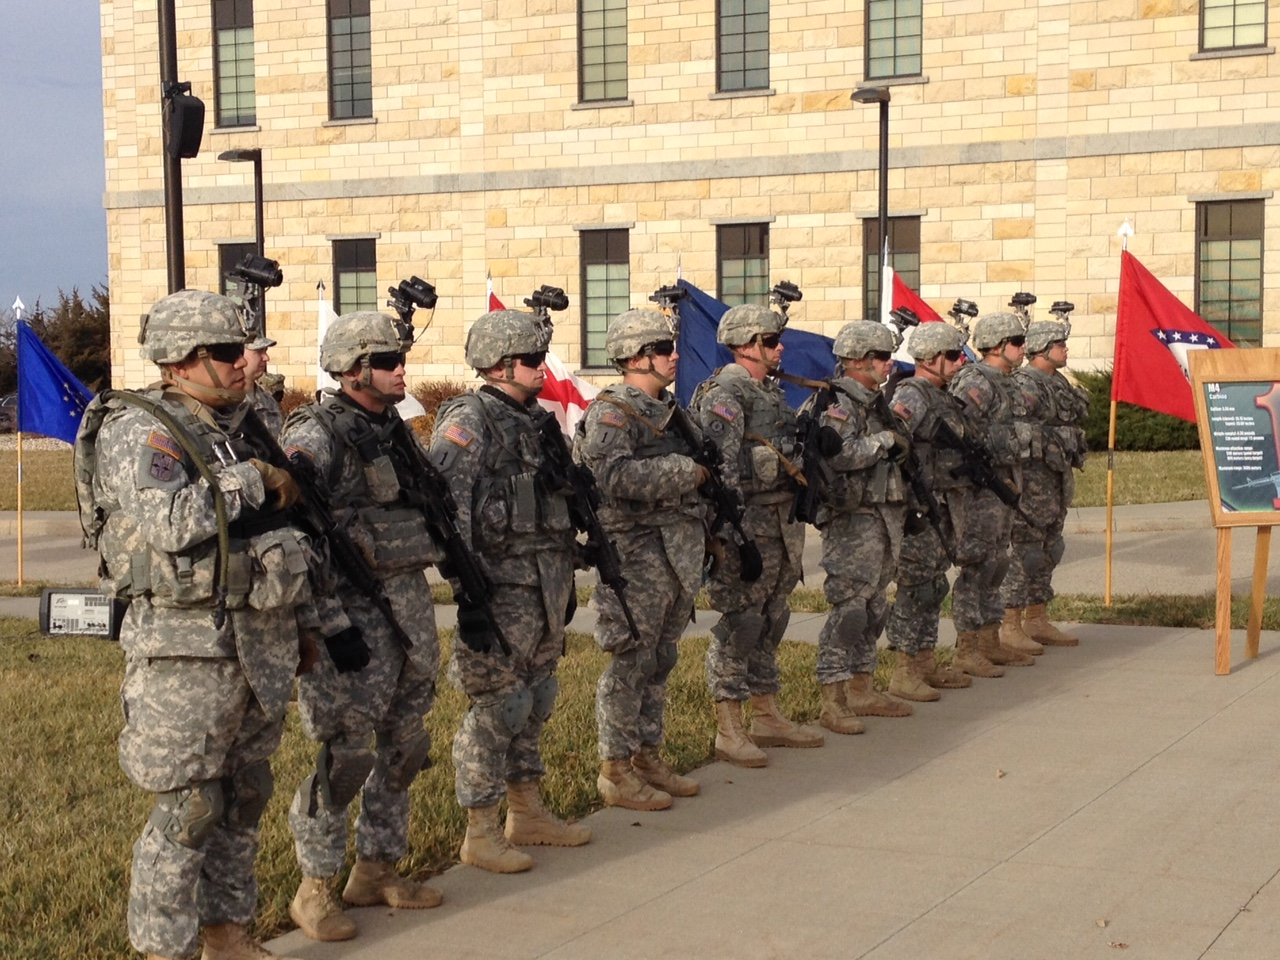 Soldiers of the First Infantry Division, headquartered at Fort Riley, a sprawling army base near Junction City and Manhattan in the Flint Hills of northeast Kansas.  (Photo by J. Schafer)